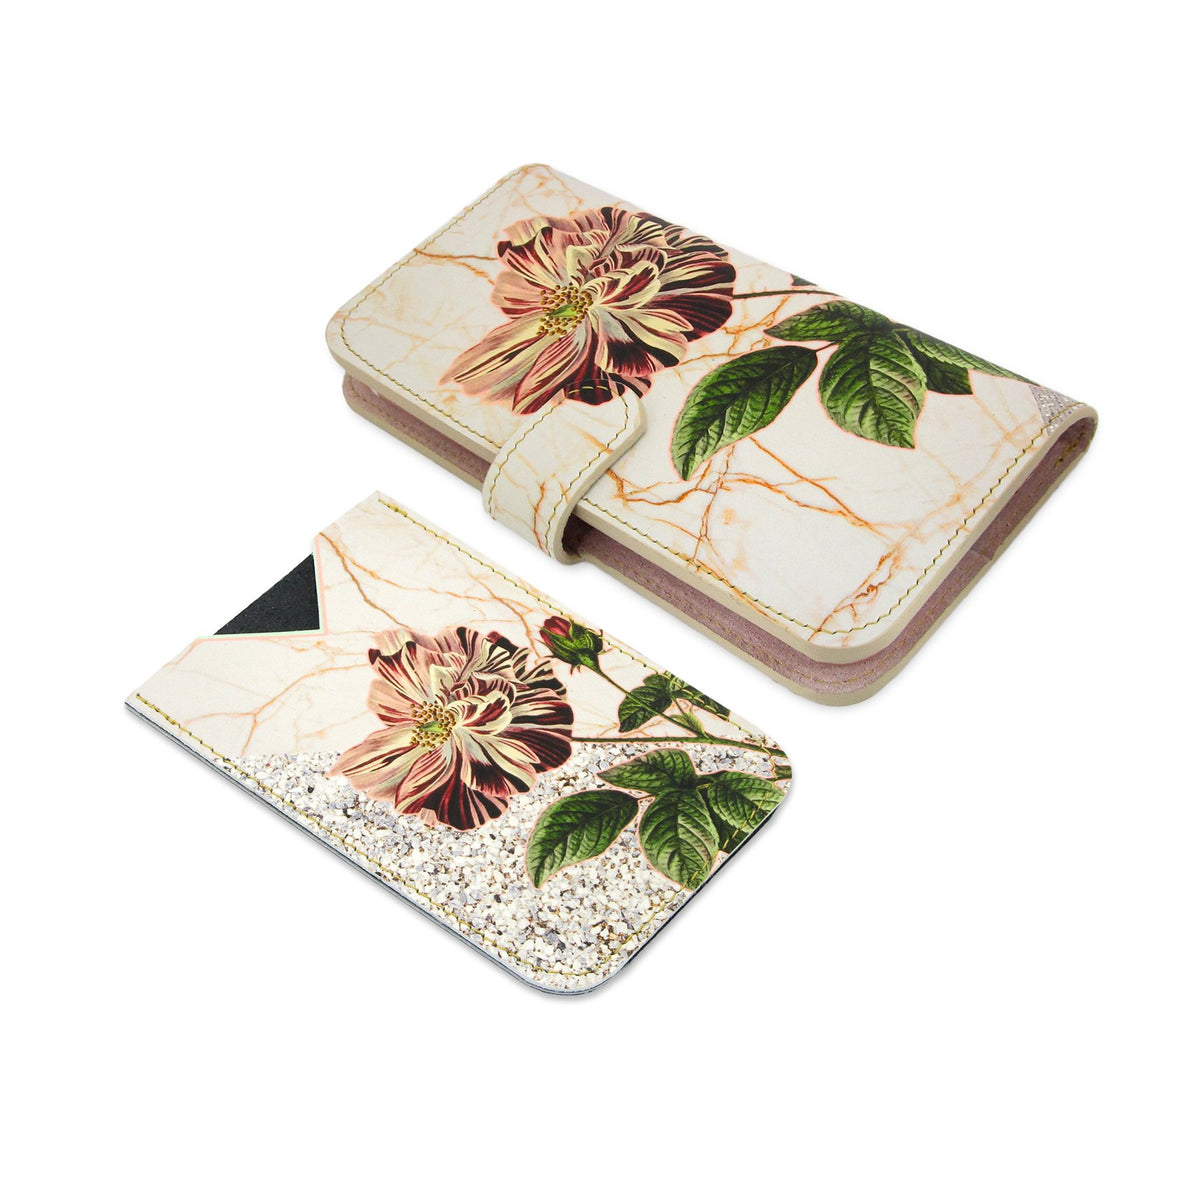 Leather Card Holder / Phone Sticker Wallet Pocket - Wild Rose Wallet Tovi Sorga